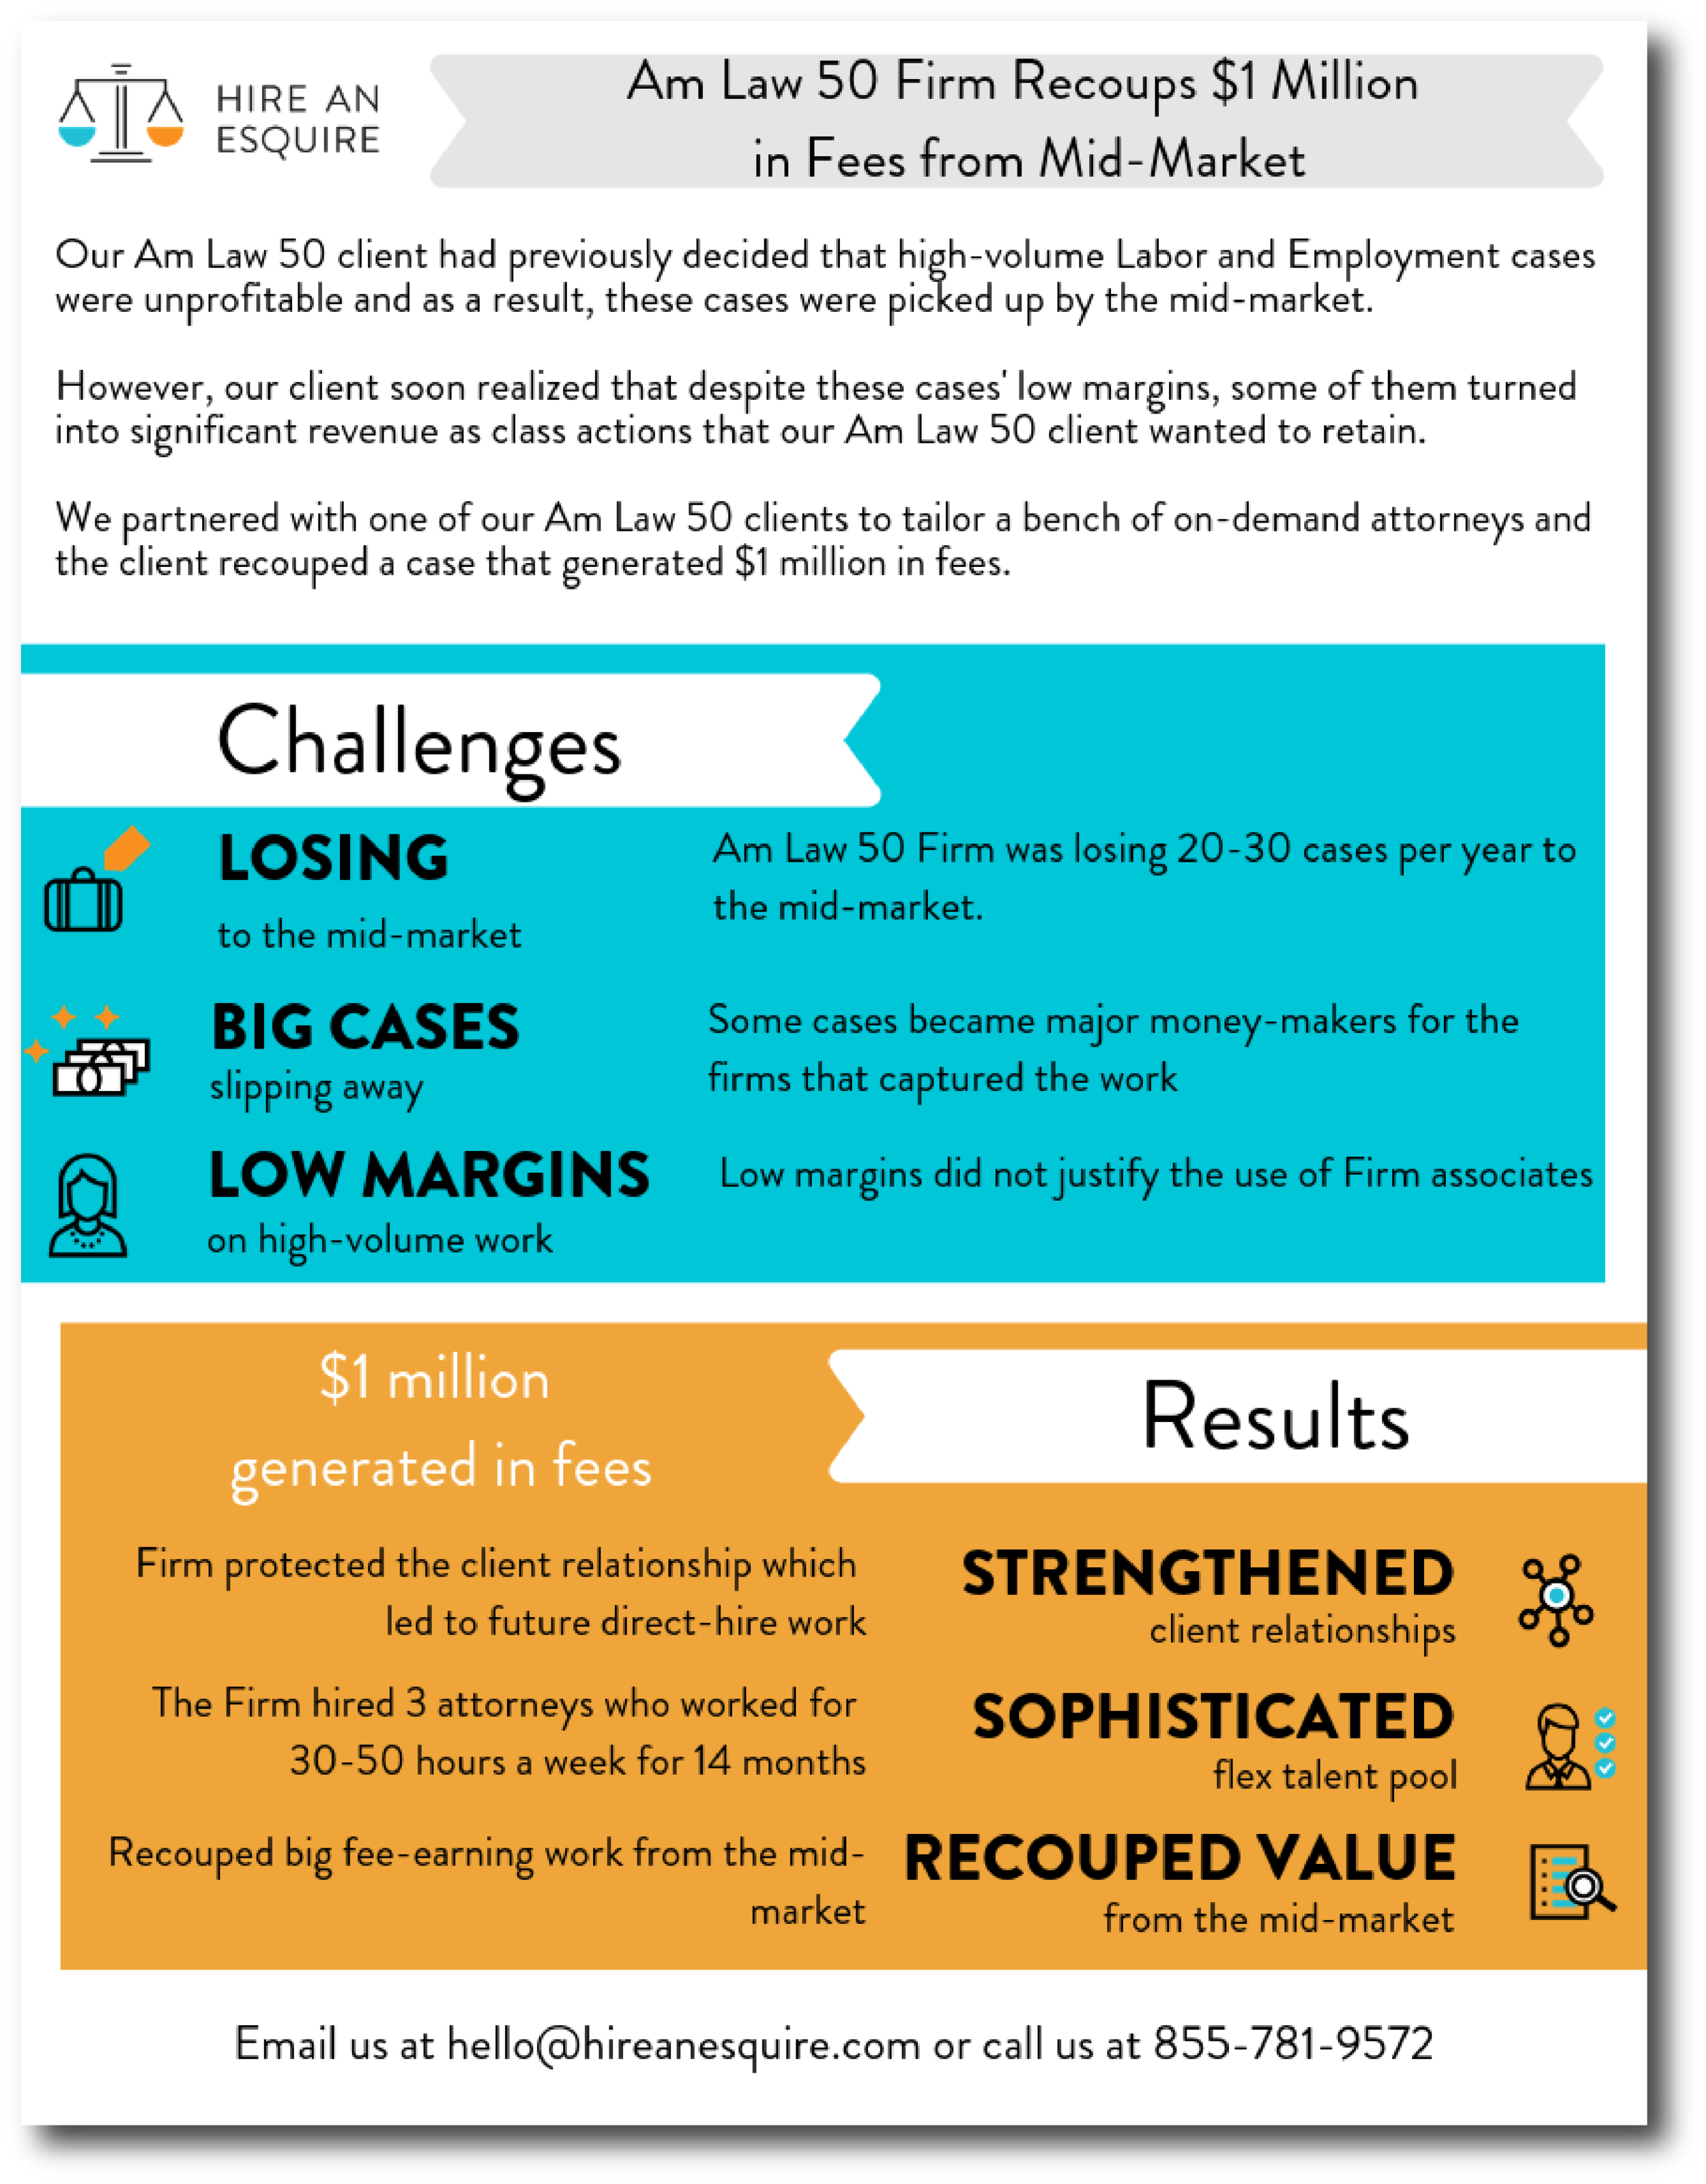 Am Law 50 Firm 2 Case Study View.png